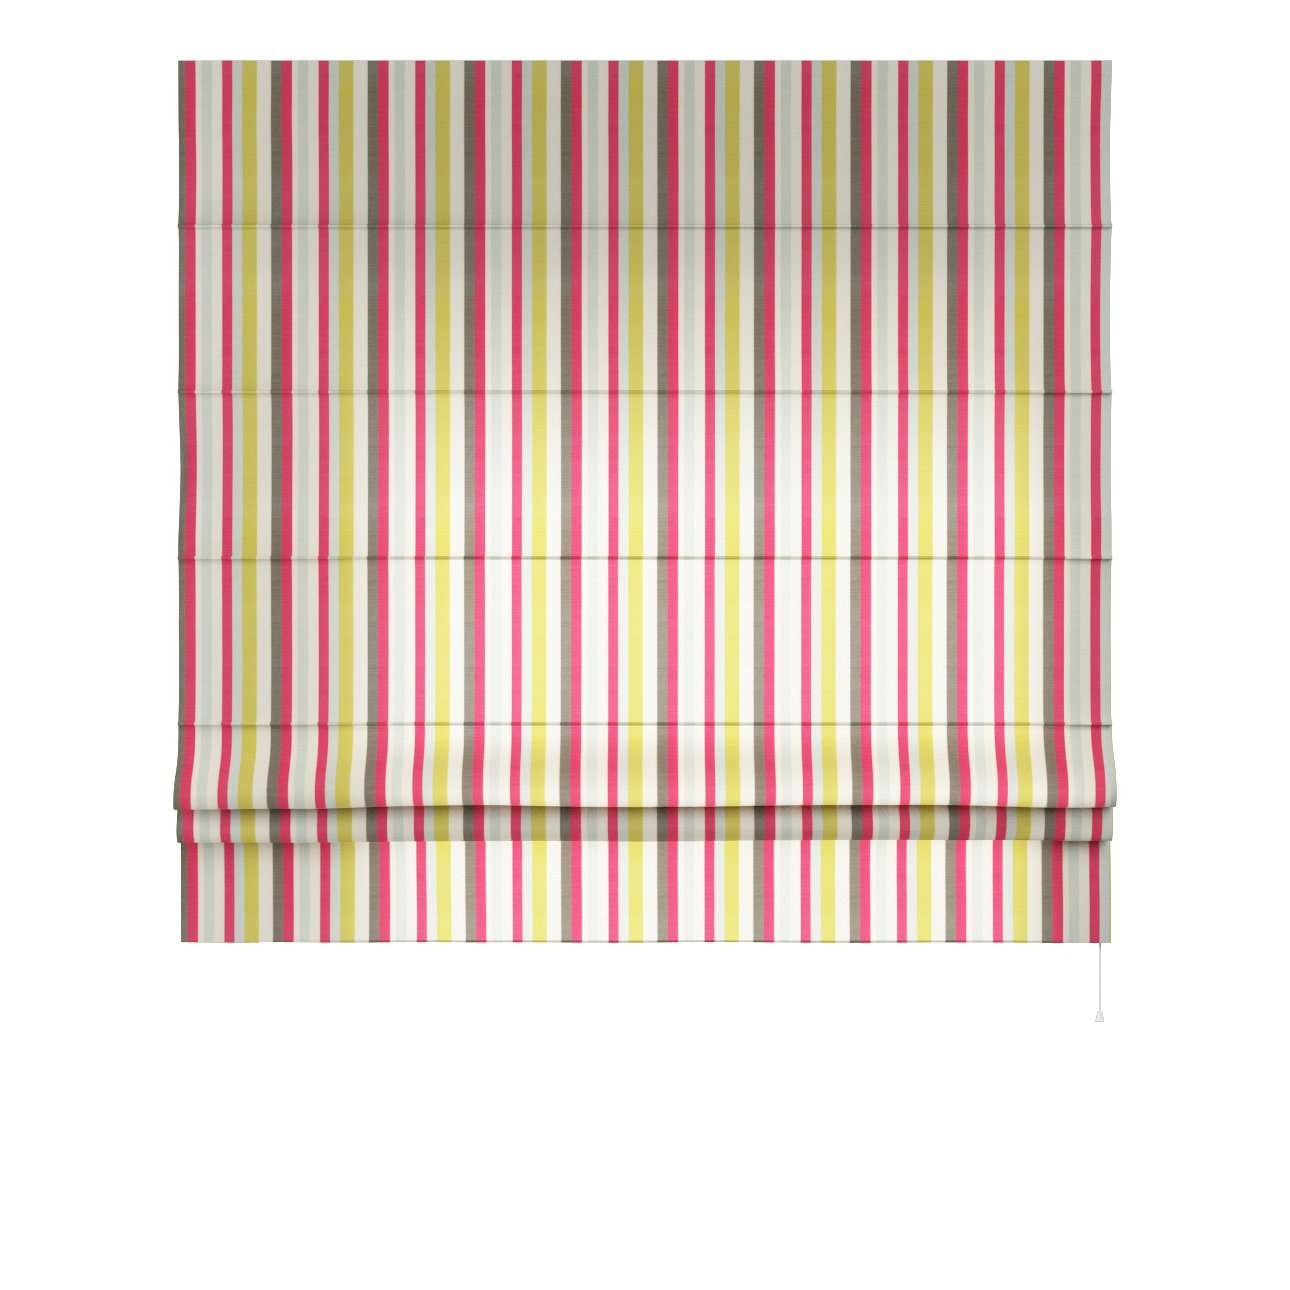 Padva roman blind  80 x 170 cm (31.5 x 67 inch) in collection Norge, fabric: 140-81